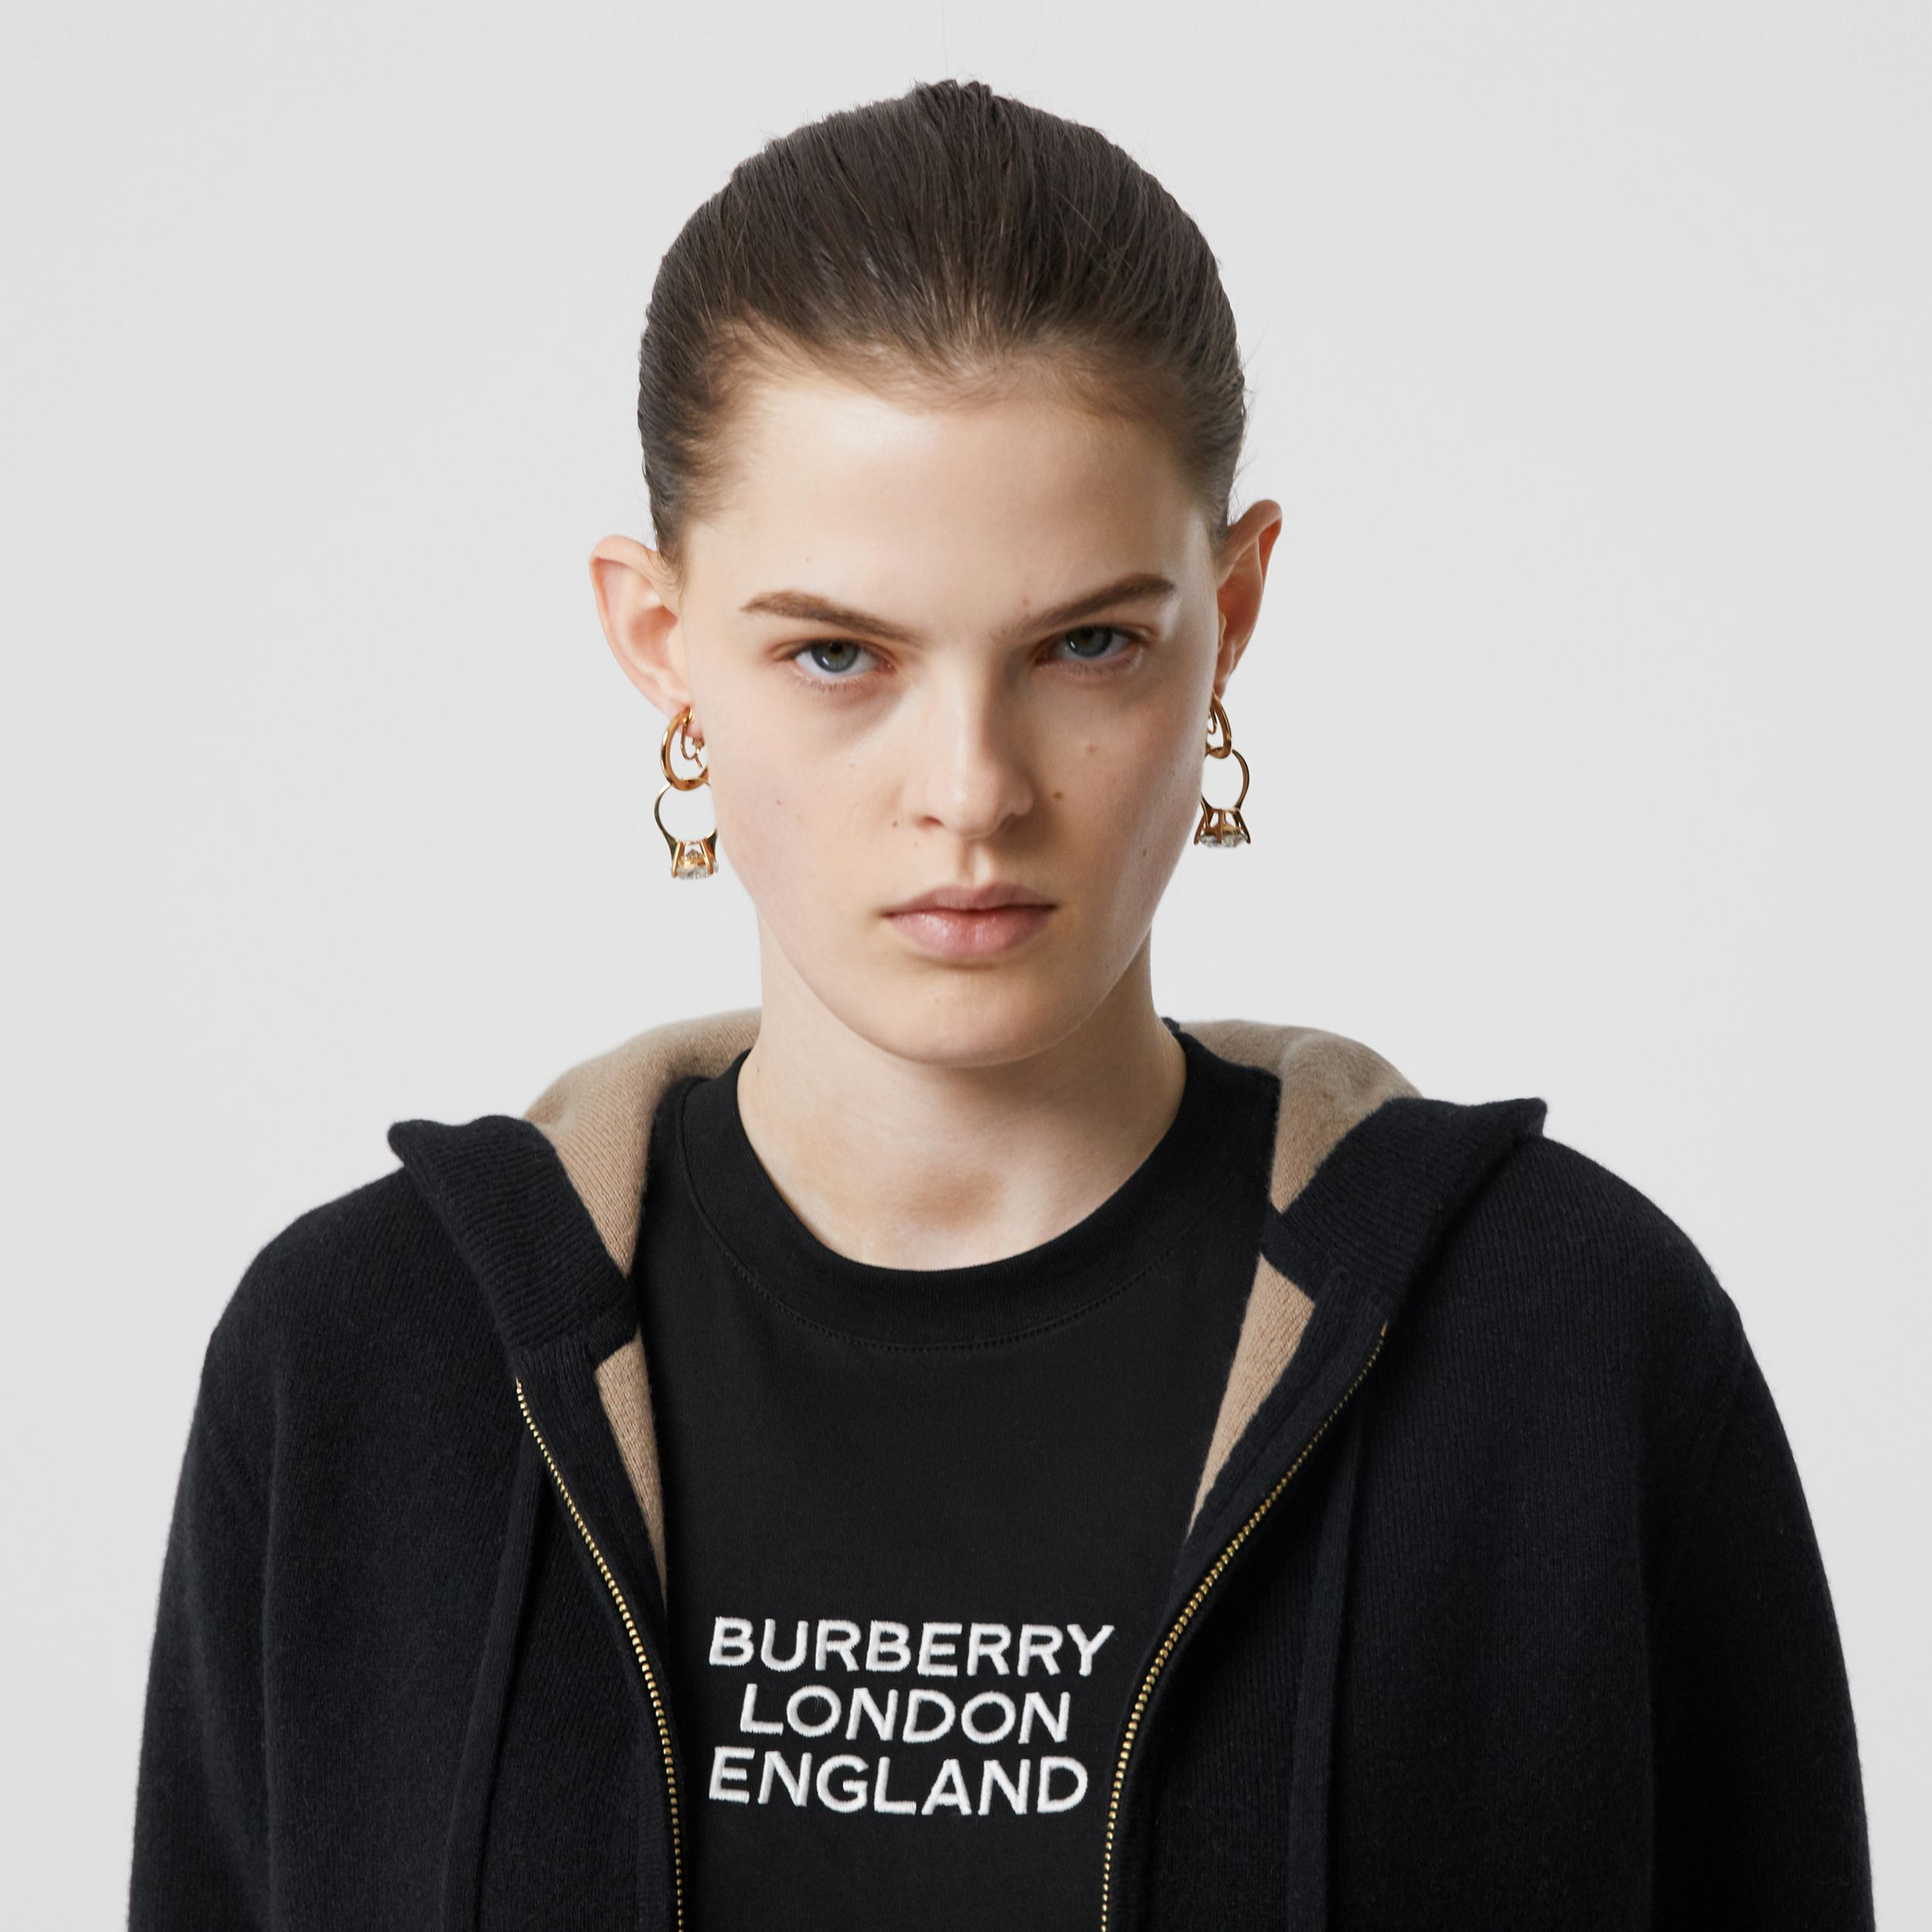 Embroidered Logo Cashmere Hooded Top in Black - Women | Burberry - 2